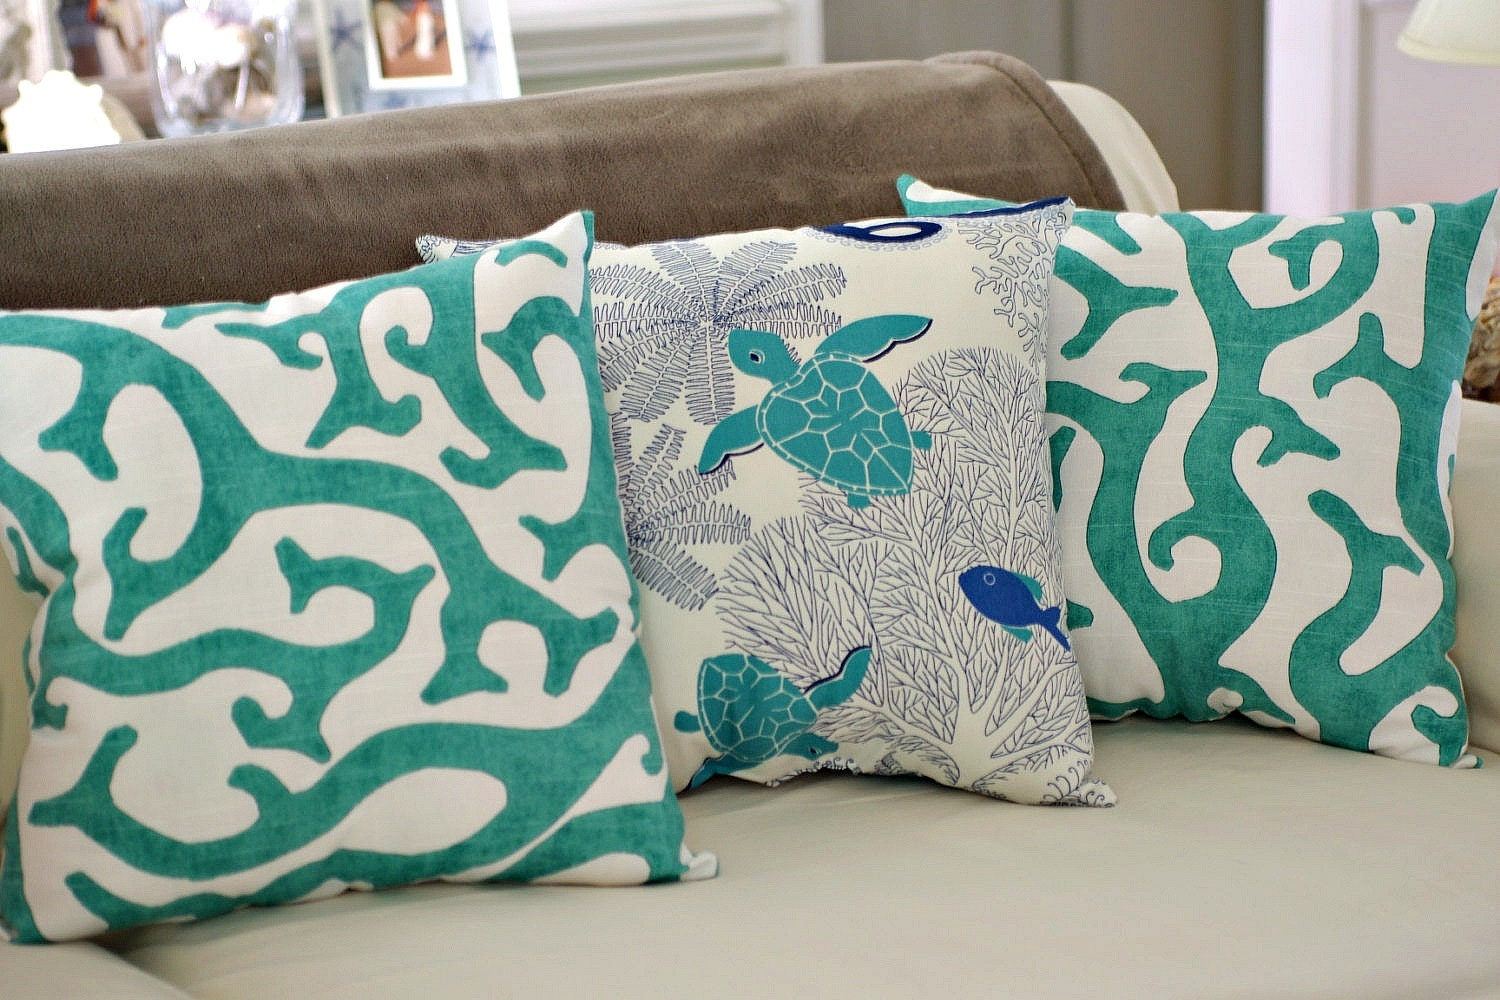 Beach house decor coral reef 18x18 throw pillow pick fabric for Decor pillows